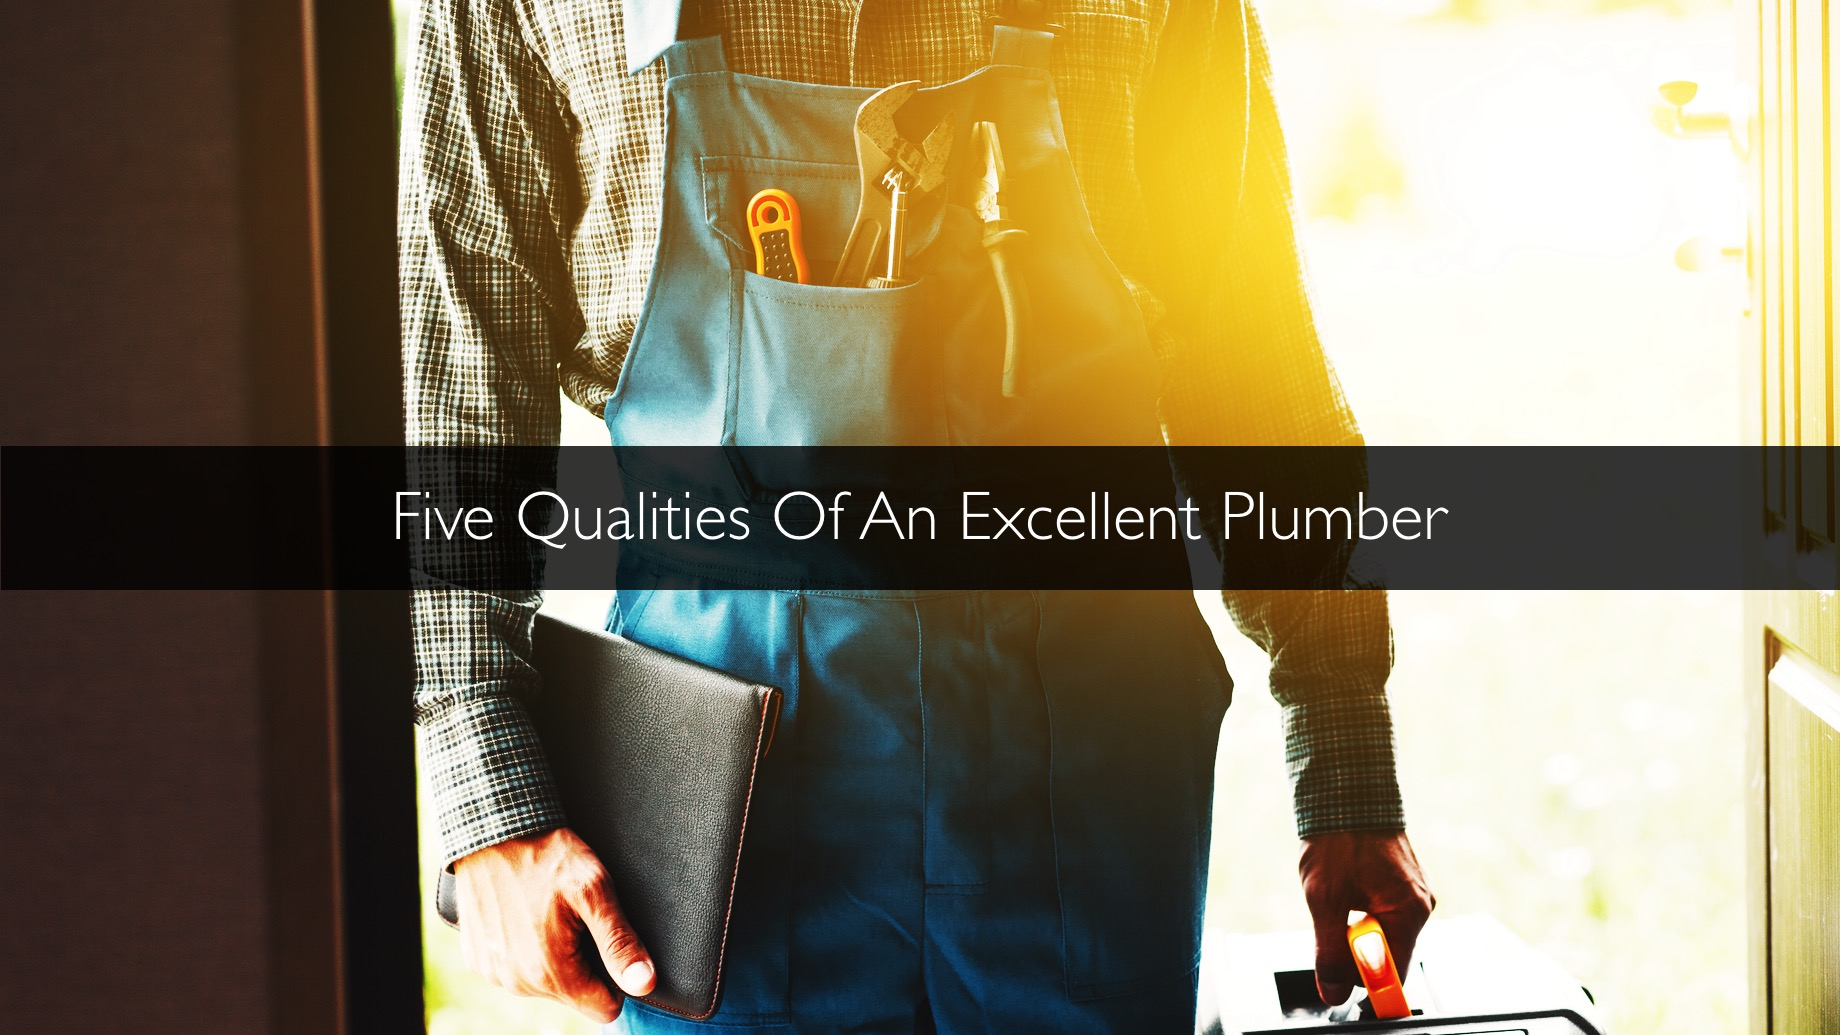 Five Qualities Of An Excellent Plumber